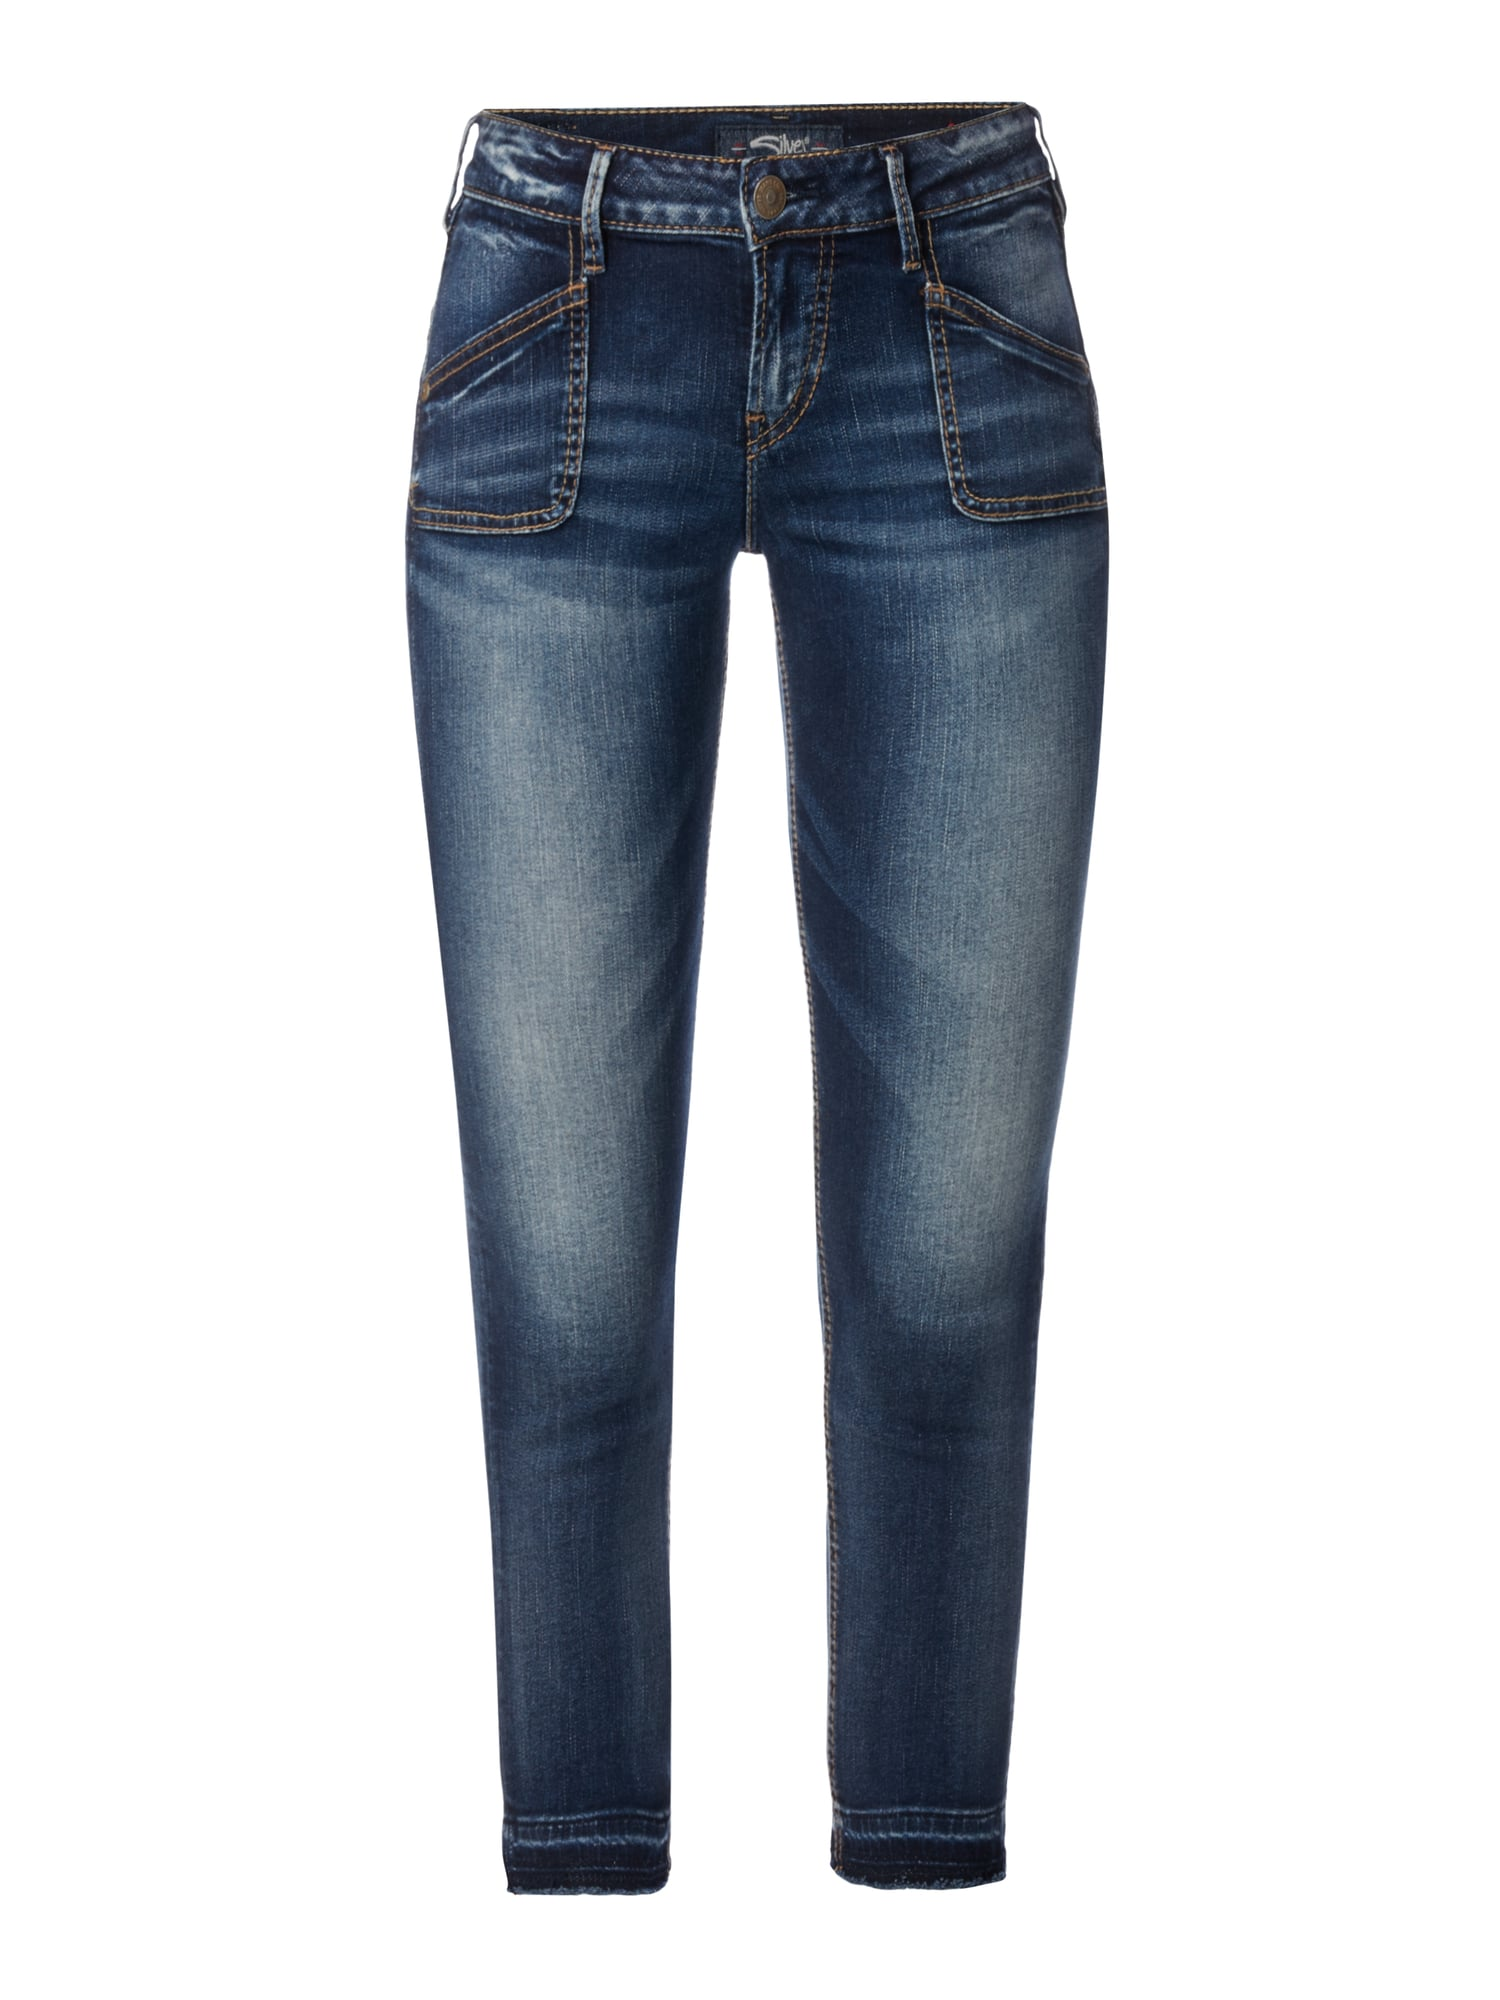 silver jeans stone washed skinny fit jeans in blau t rkis online kaufen 9607348 p c online. Black Bedroom Furniture Sets. Home Design Ideas